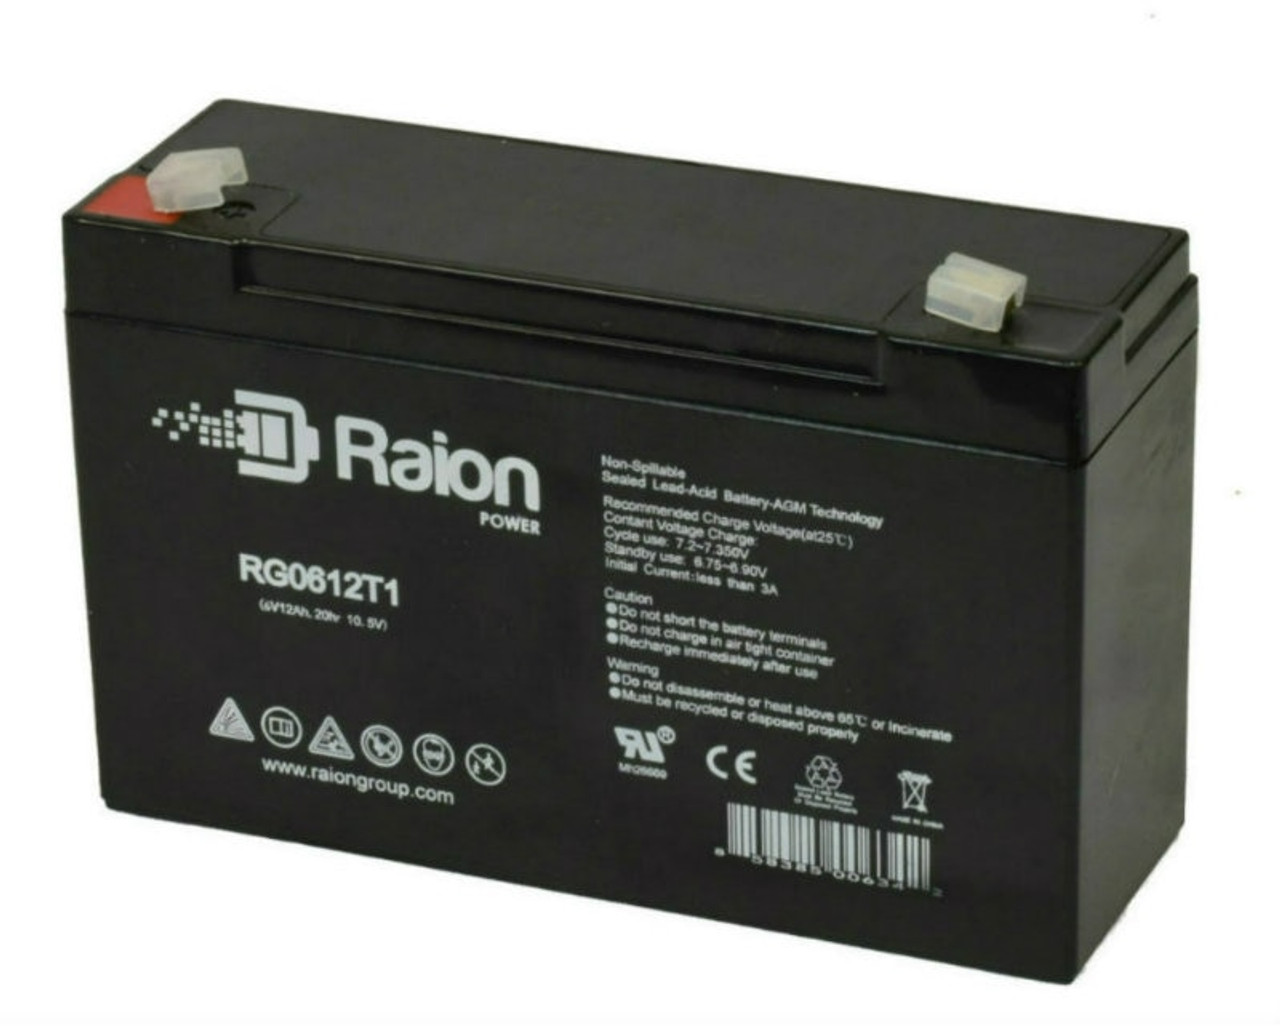 Raion Power RG06120T1 Replacement Battery Pack for Light Alarms SG12E3 emergency light